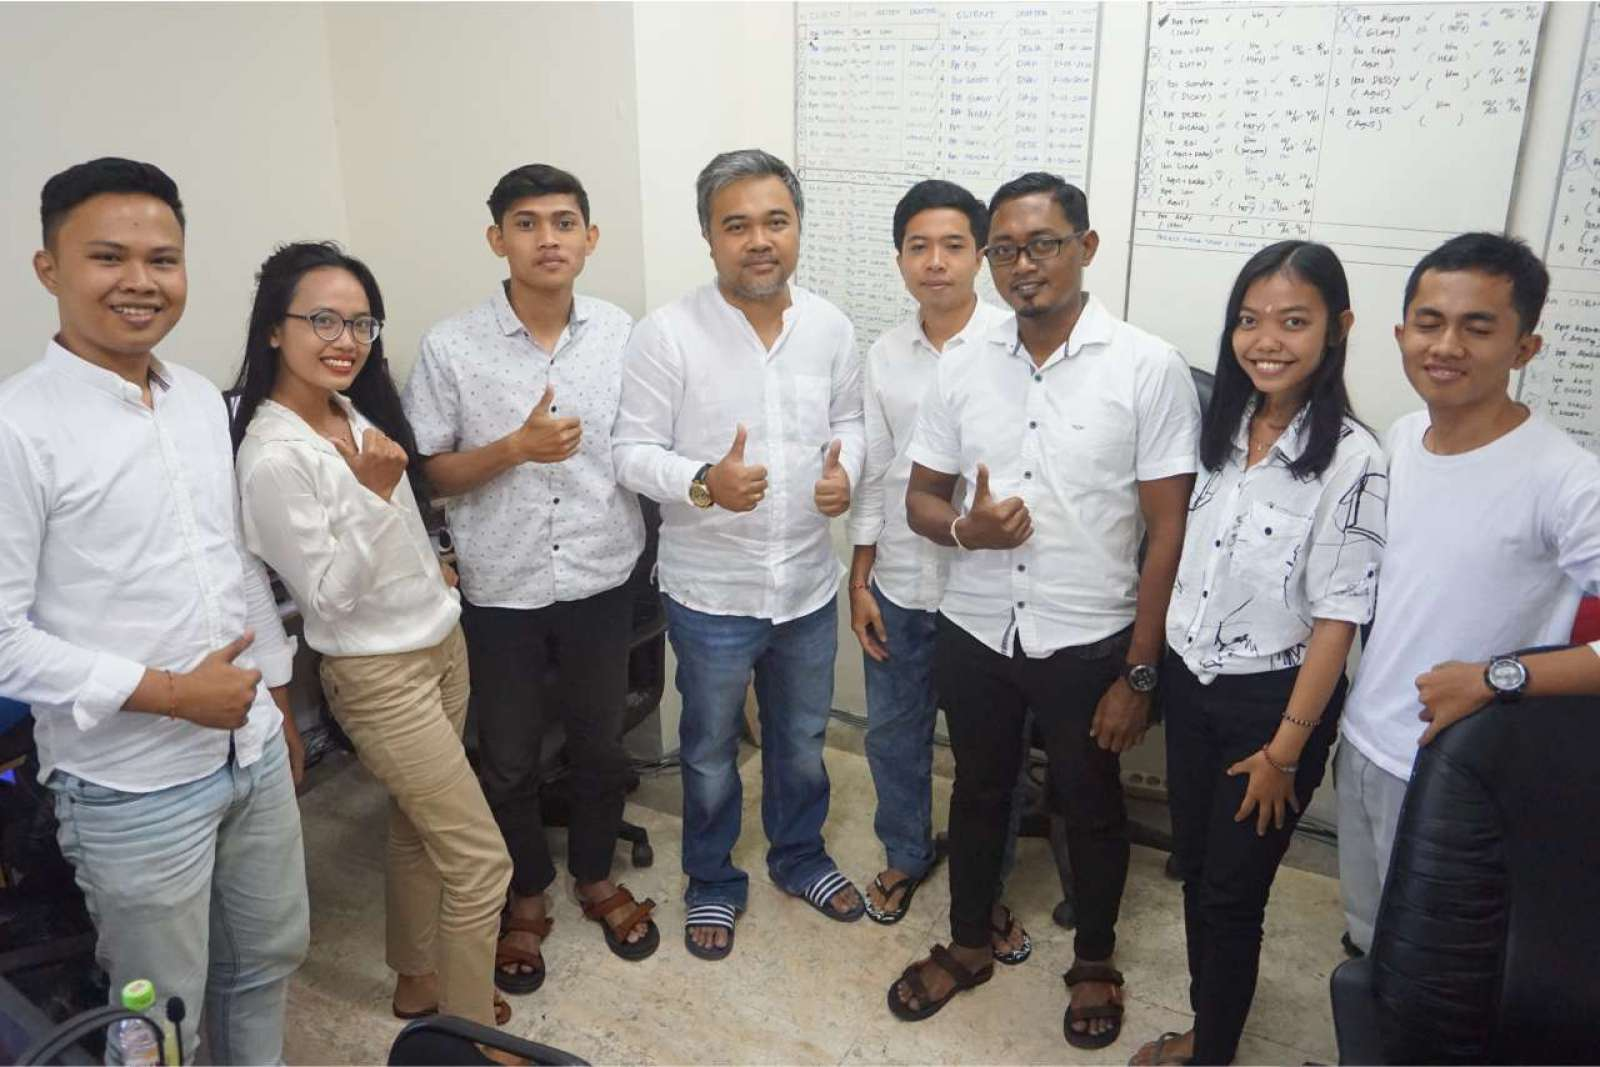 Photo with the Emporio Bali Architect Team Before Working From Home Because of the COVID-19 Virus Pa 7